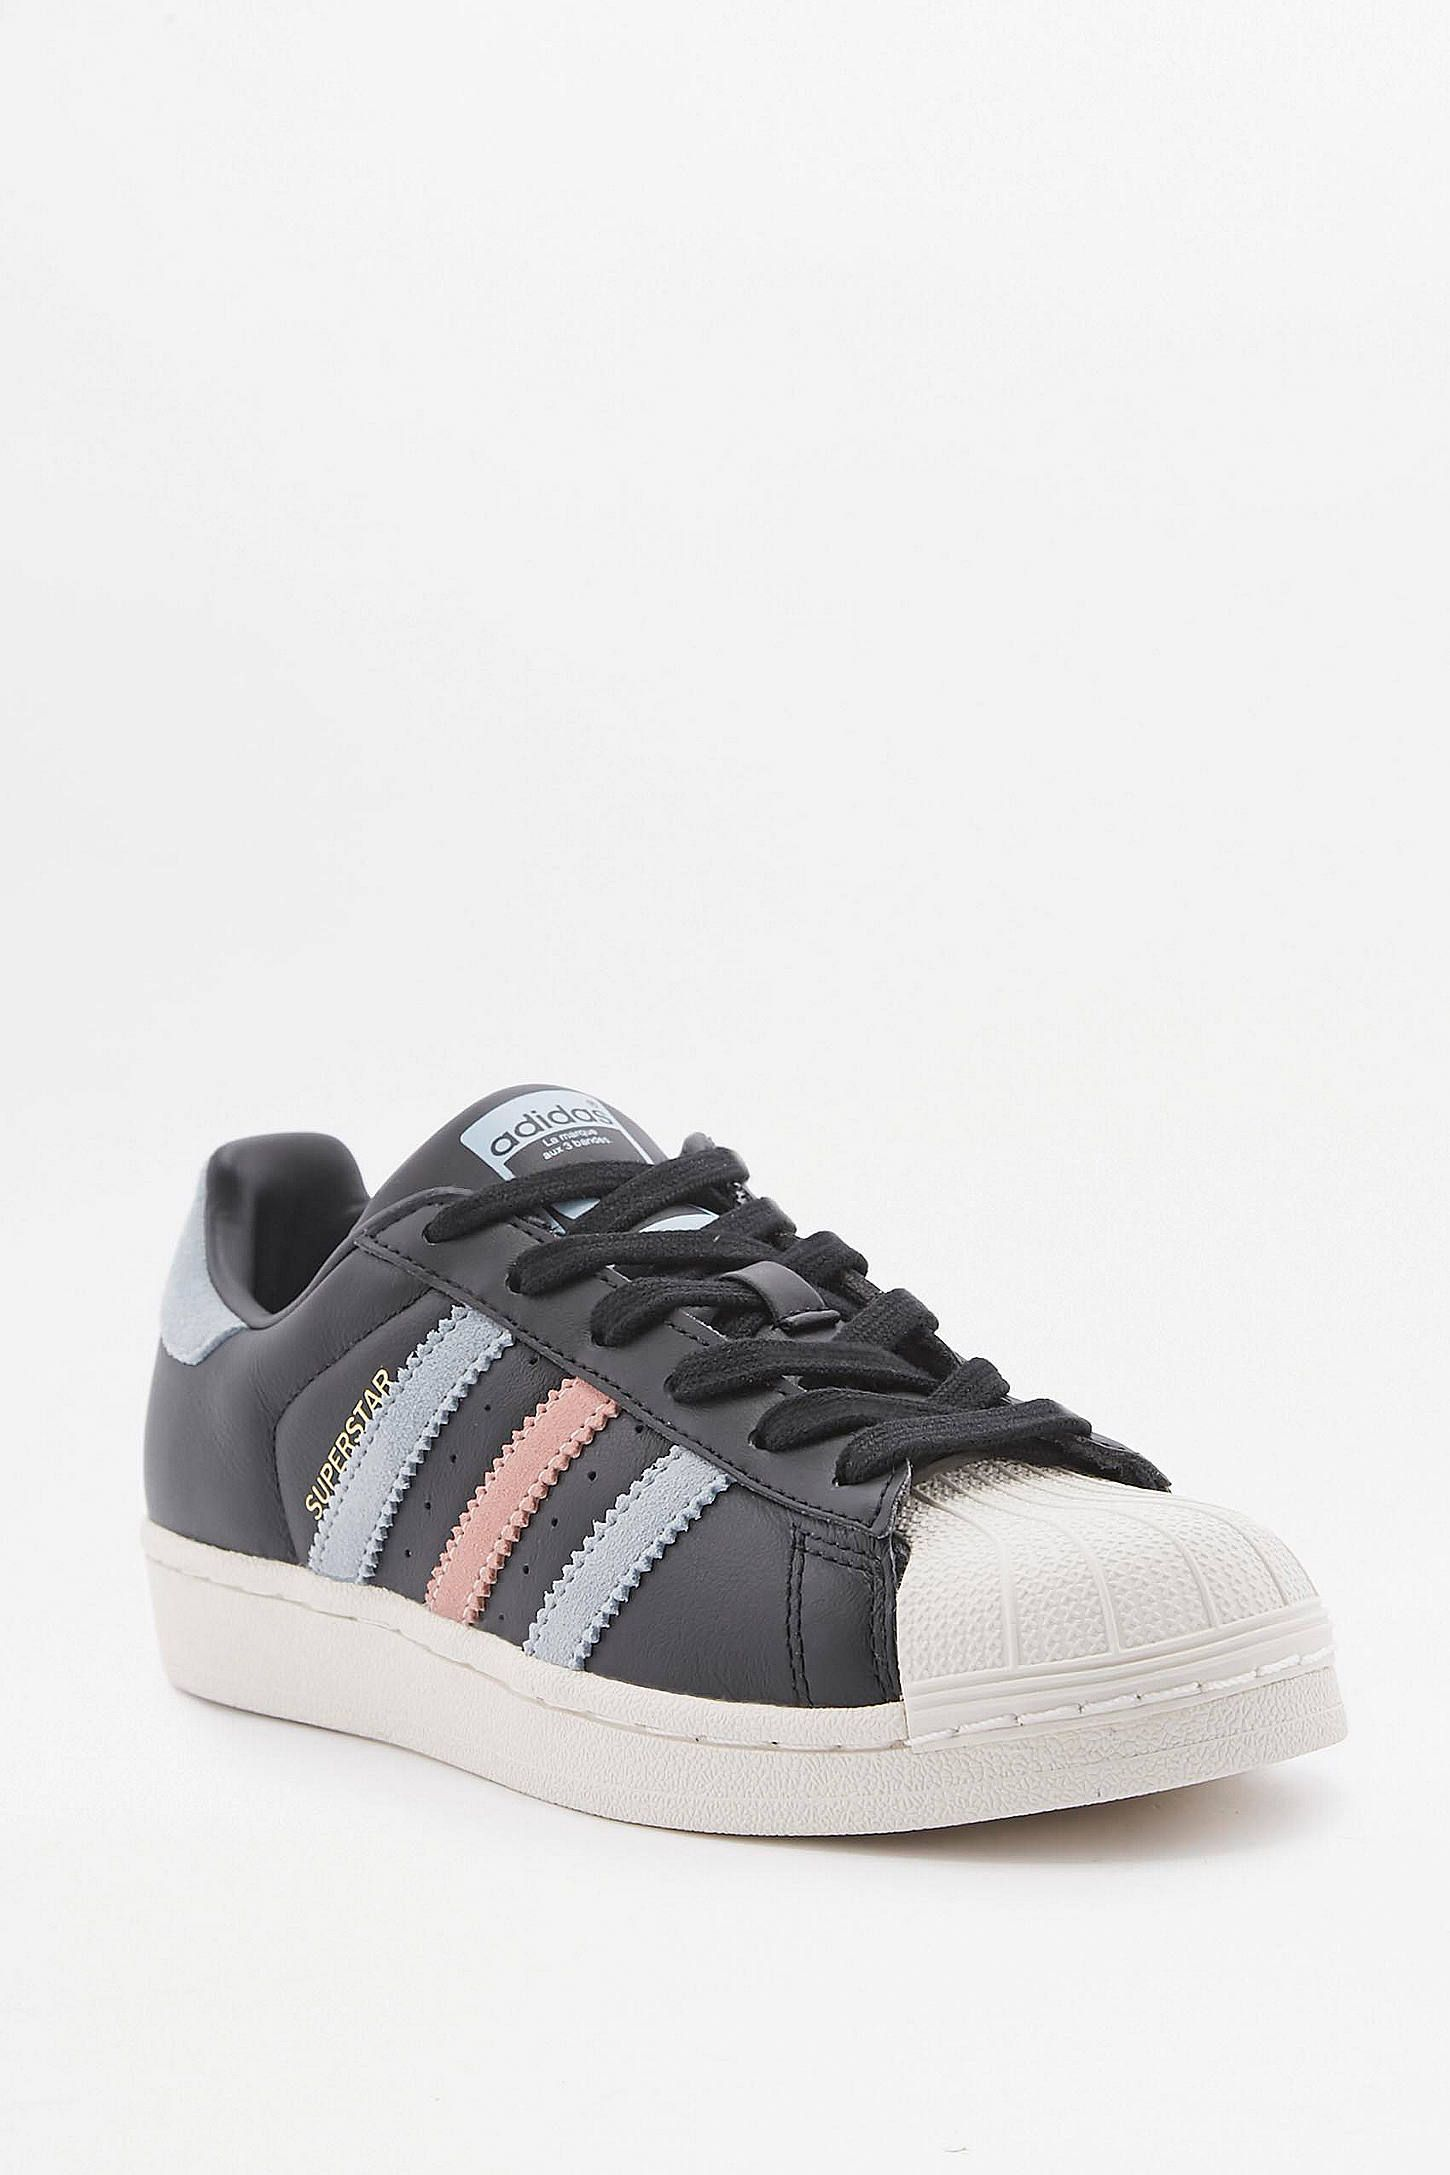 Cheap Adidas mi Superstar 80's Shoes undefined Cheap Adidas US